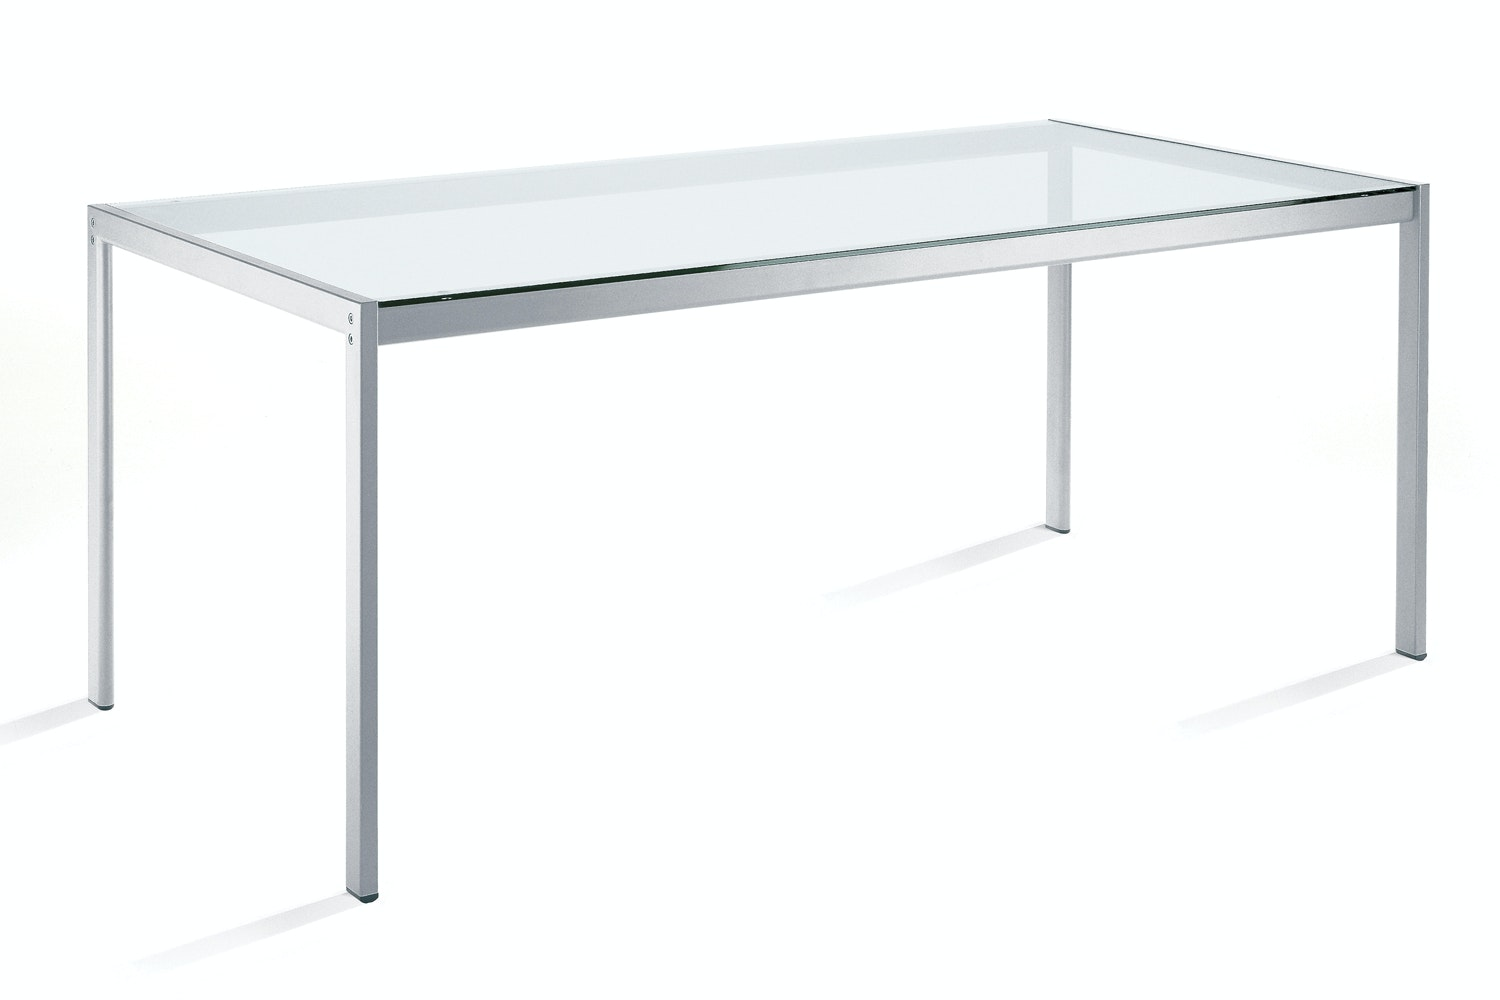 Sanmarco 2570 Table by Gae Aulenti for Zanotta